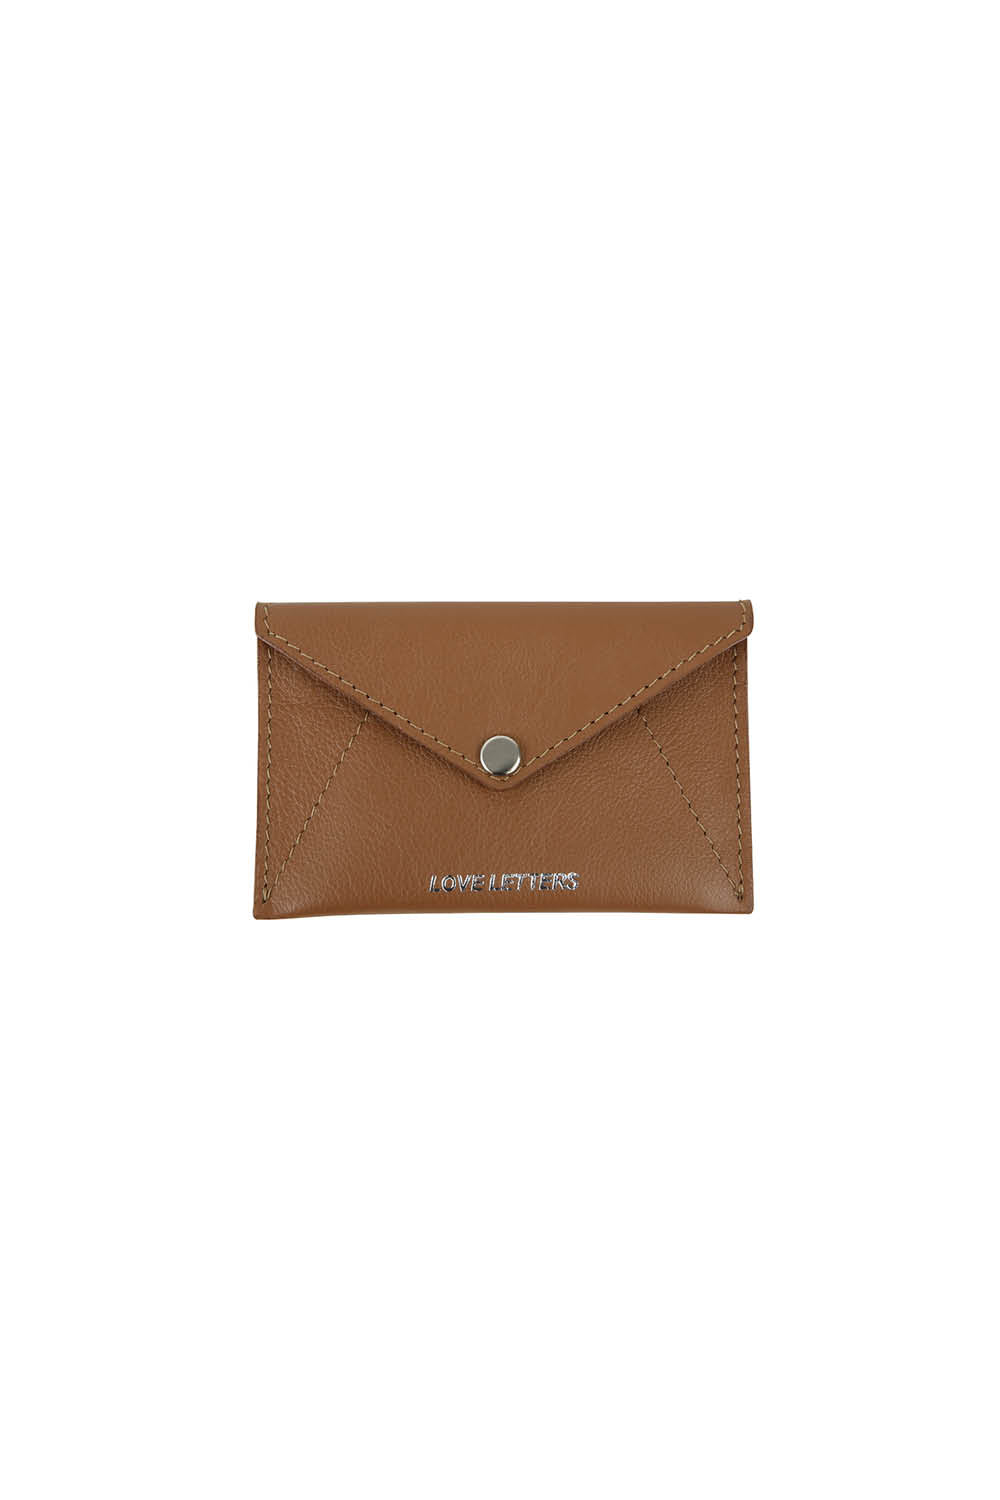 Love Letters Mini Card Case in Antique Tan Leather